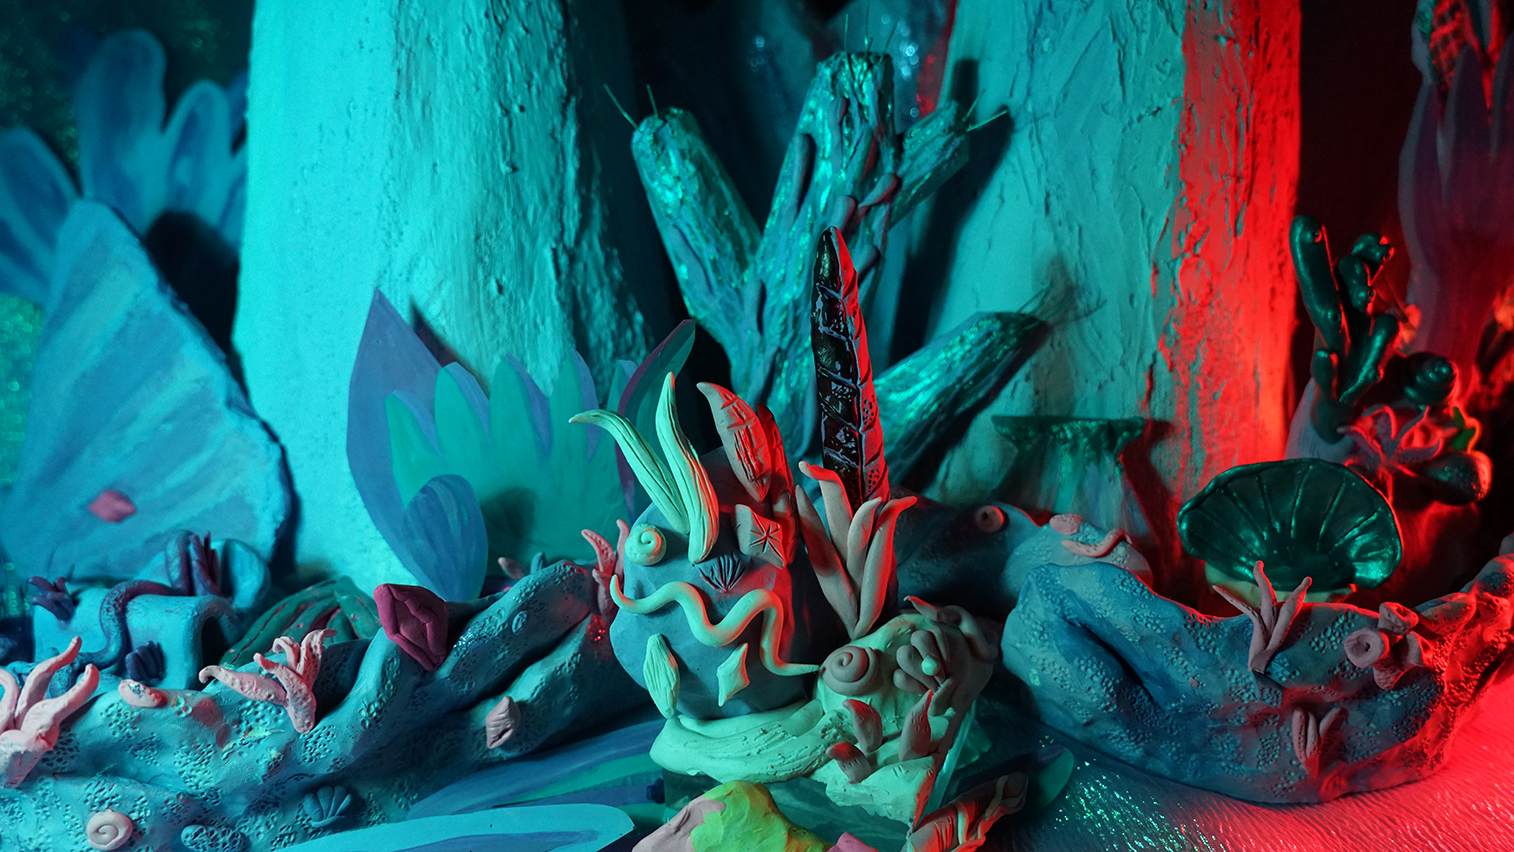 Zoe Chressanthis, Still from  Mers Springs, Sea Floor and Reef , 2017, Animation, Clay, Acrylic, Paper Mache, Plaster. 1 minute 8 seconds